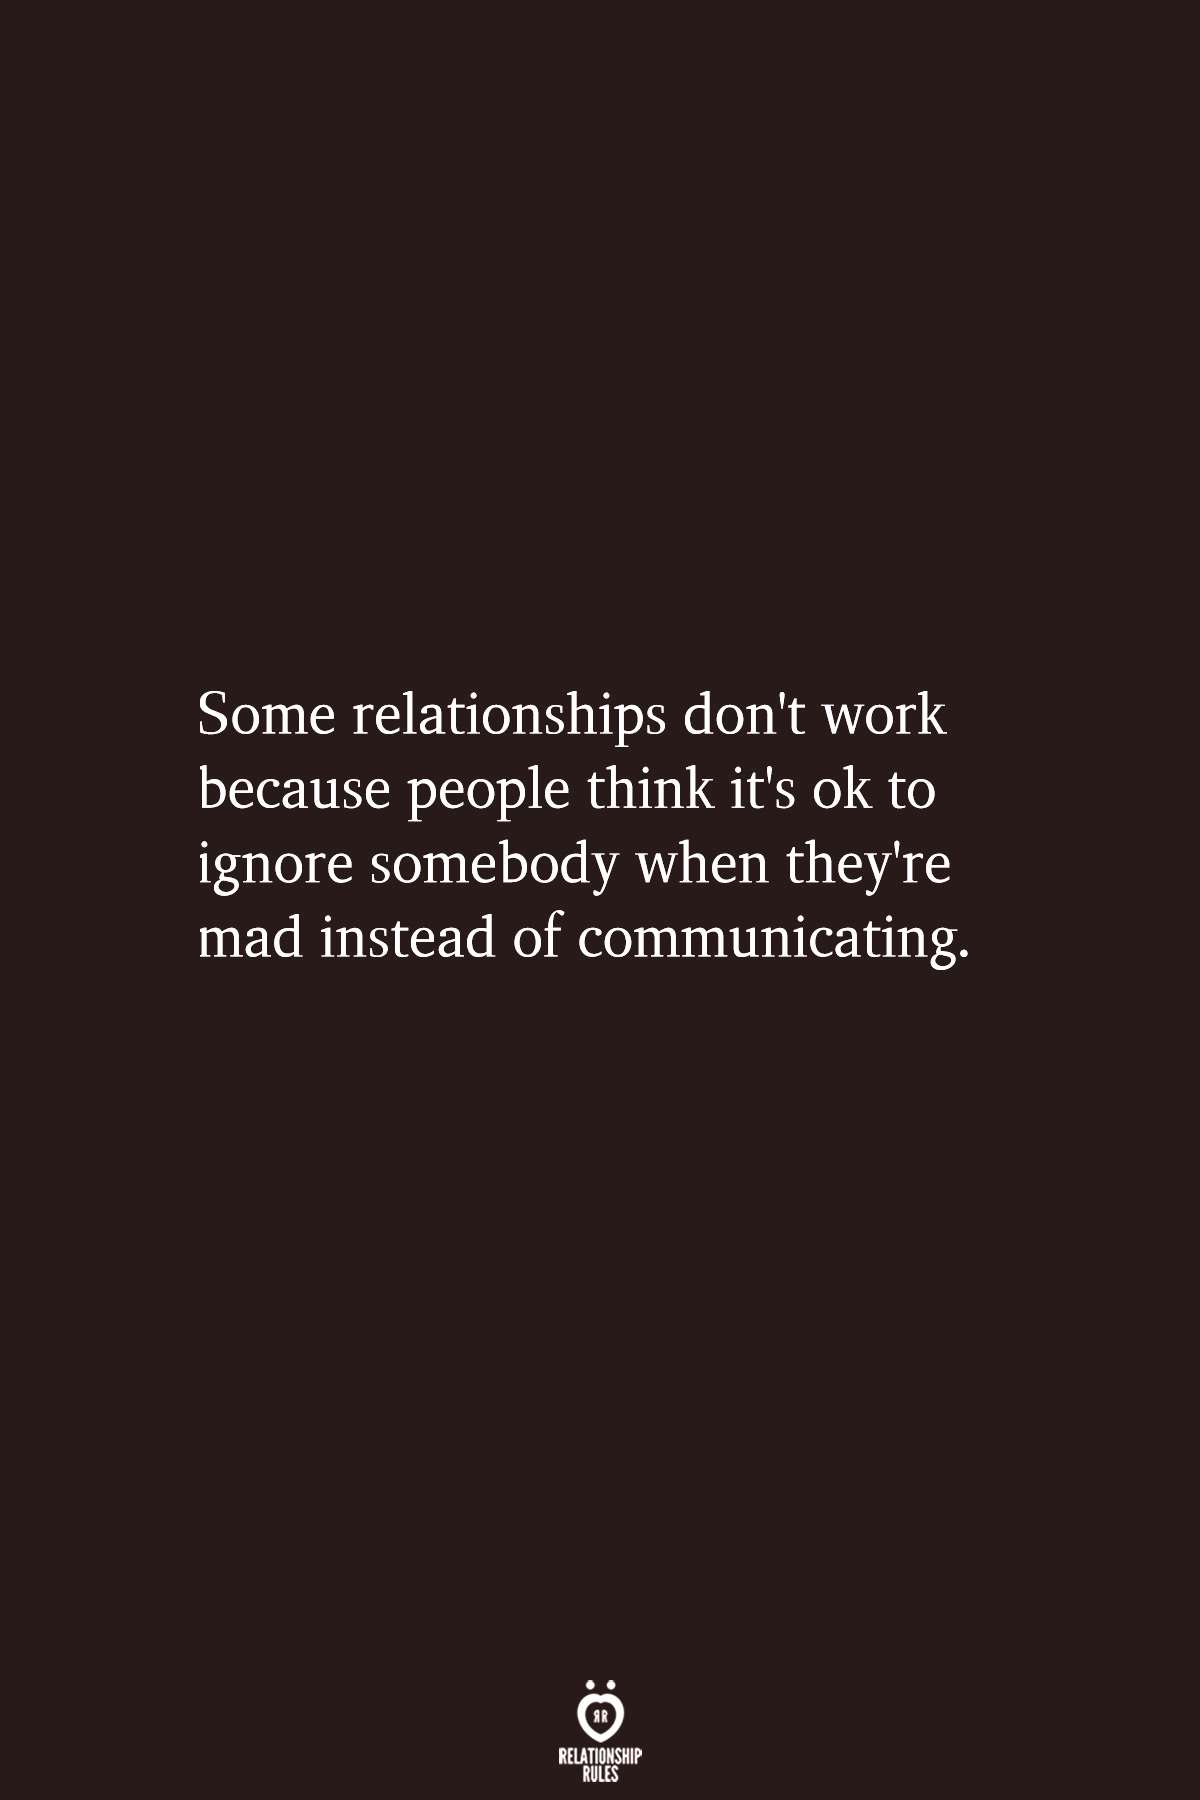 Some Relationships Don't Work Because People Think It's Ok To Ignore Somebody